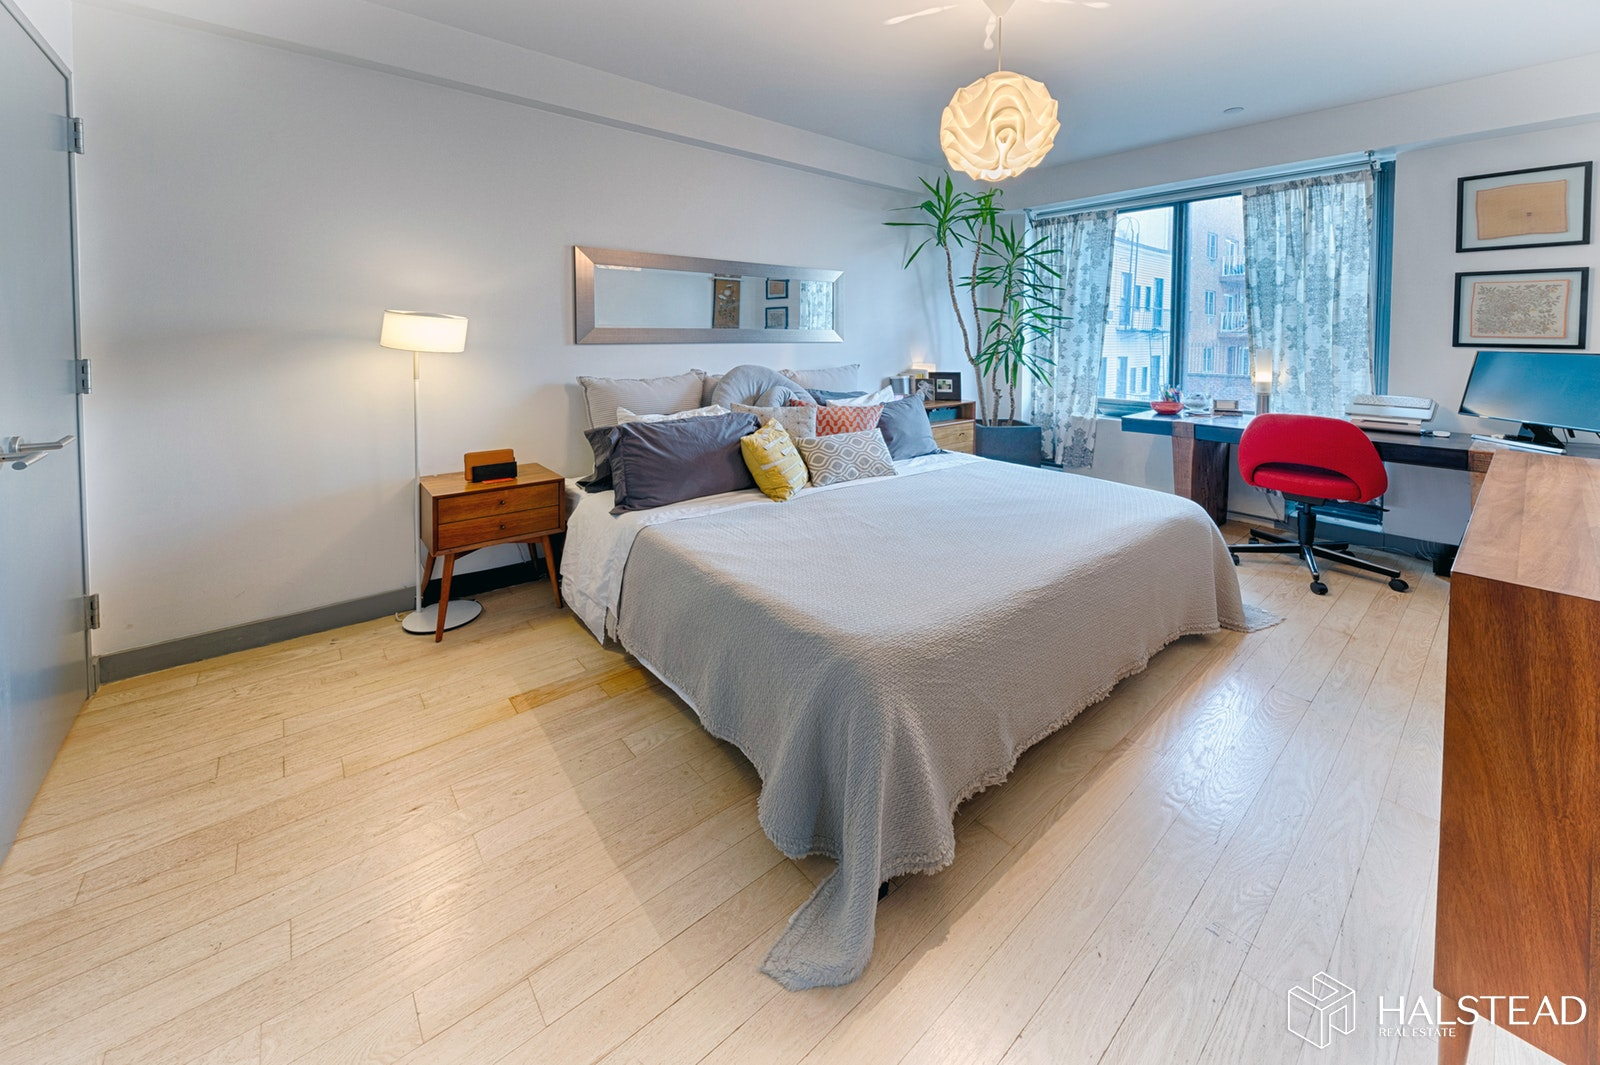 Large One Bed With Home Office & Terrace, Long Island City, Queens, NY, 11101, $1,120,000, Property For Sale, Halstead Real Estate, Photo 4